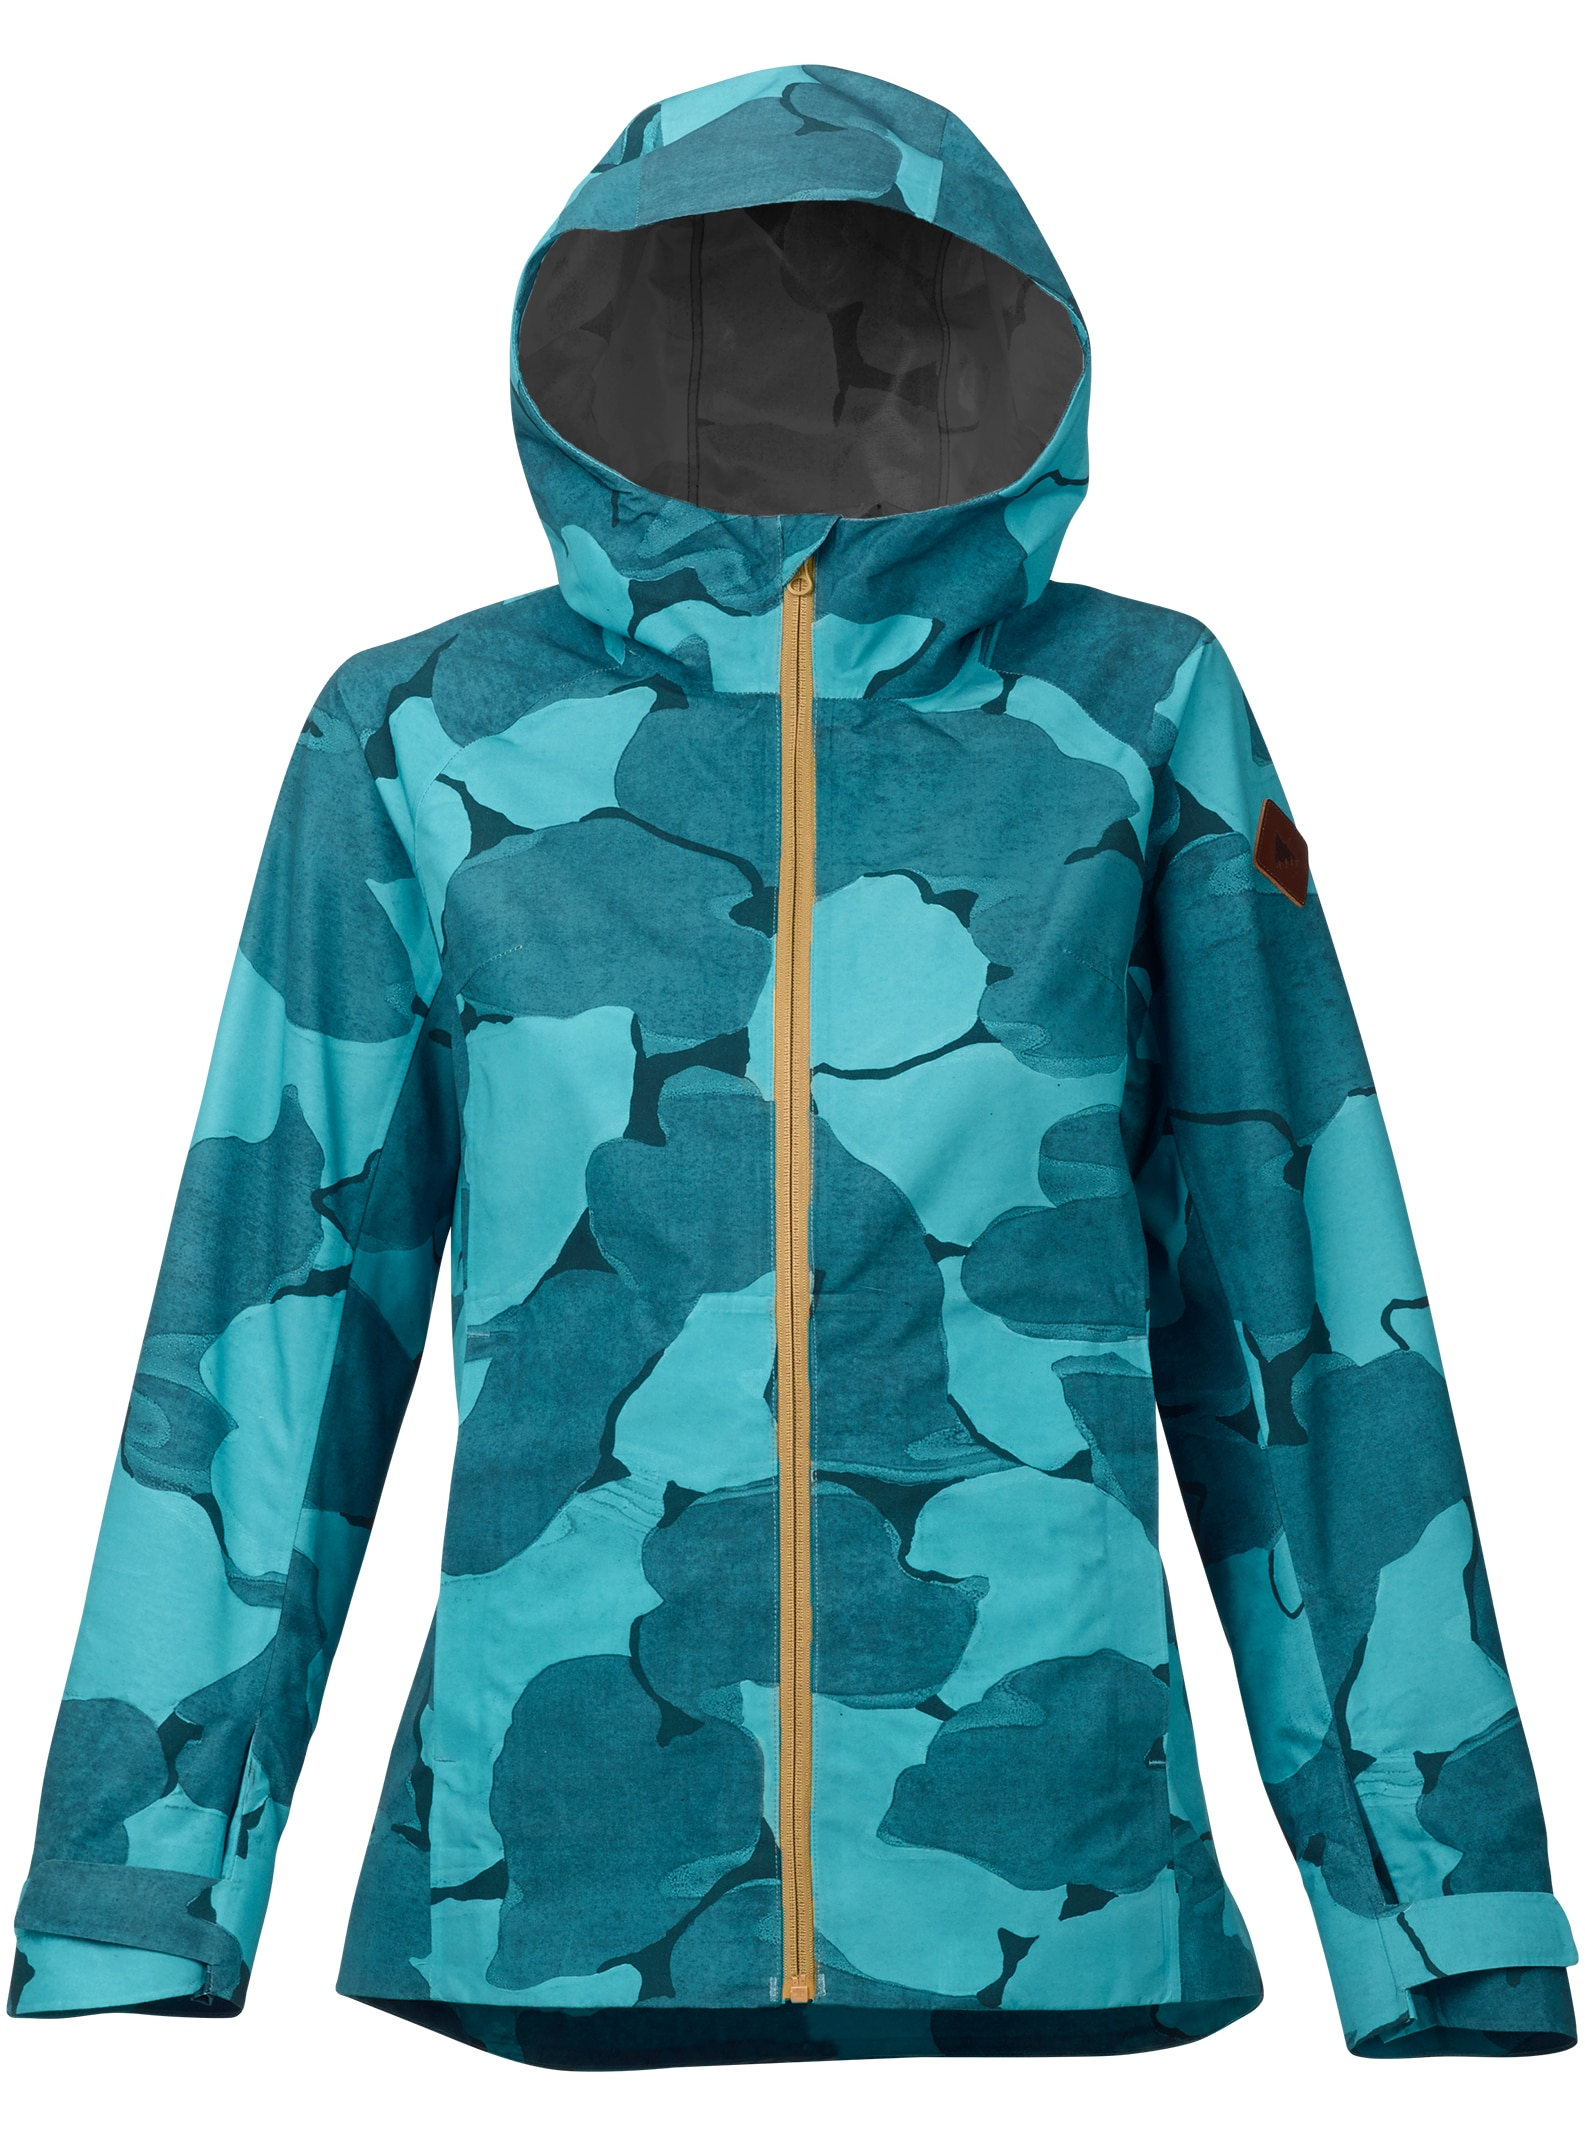 Burton - Veste imperméable Day-Light en GORE-TEX® 2L affichage en Everglade Pond Camo